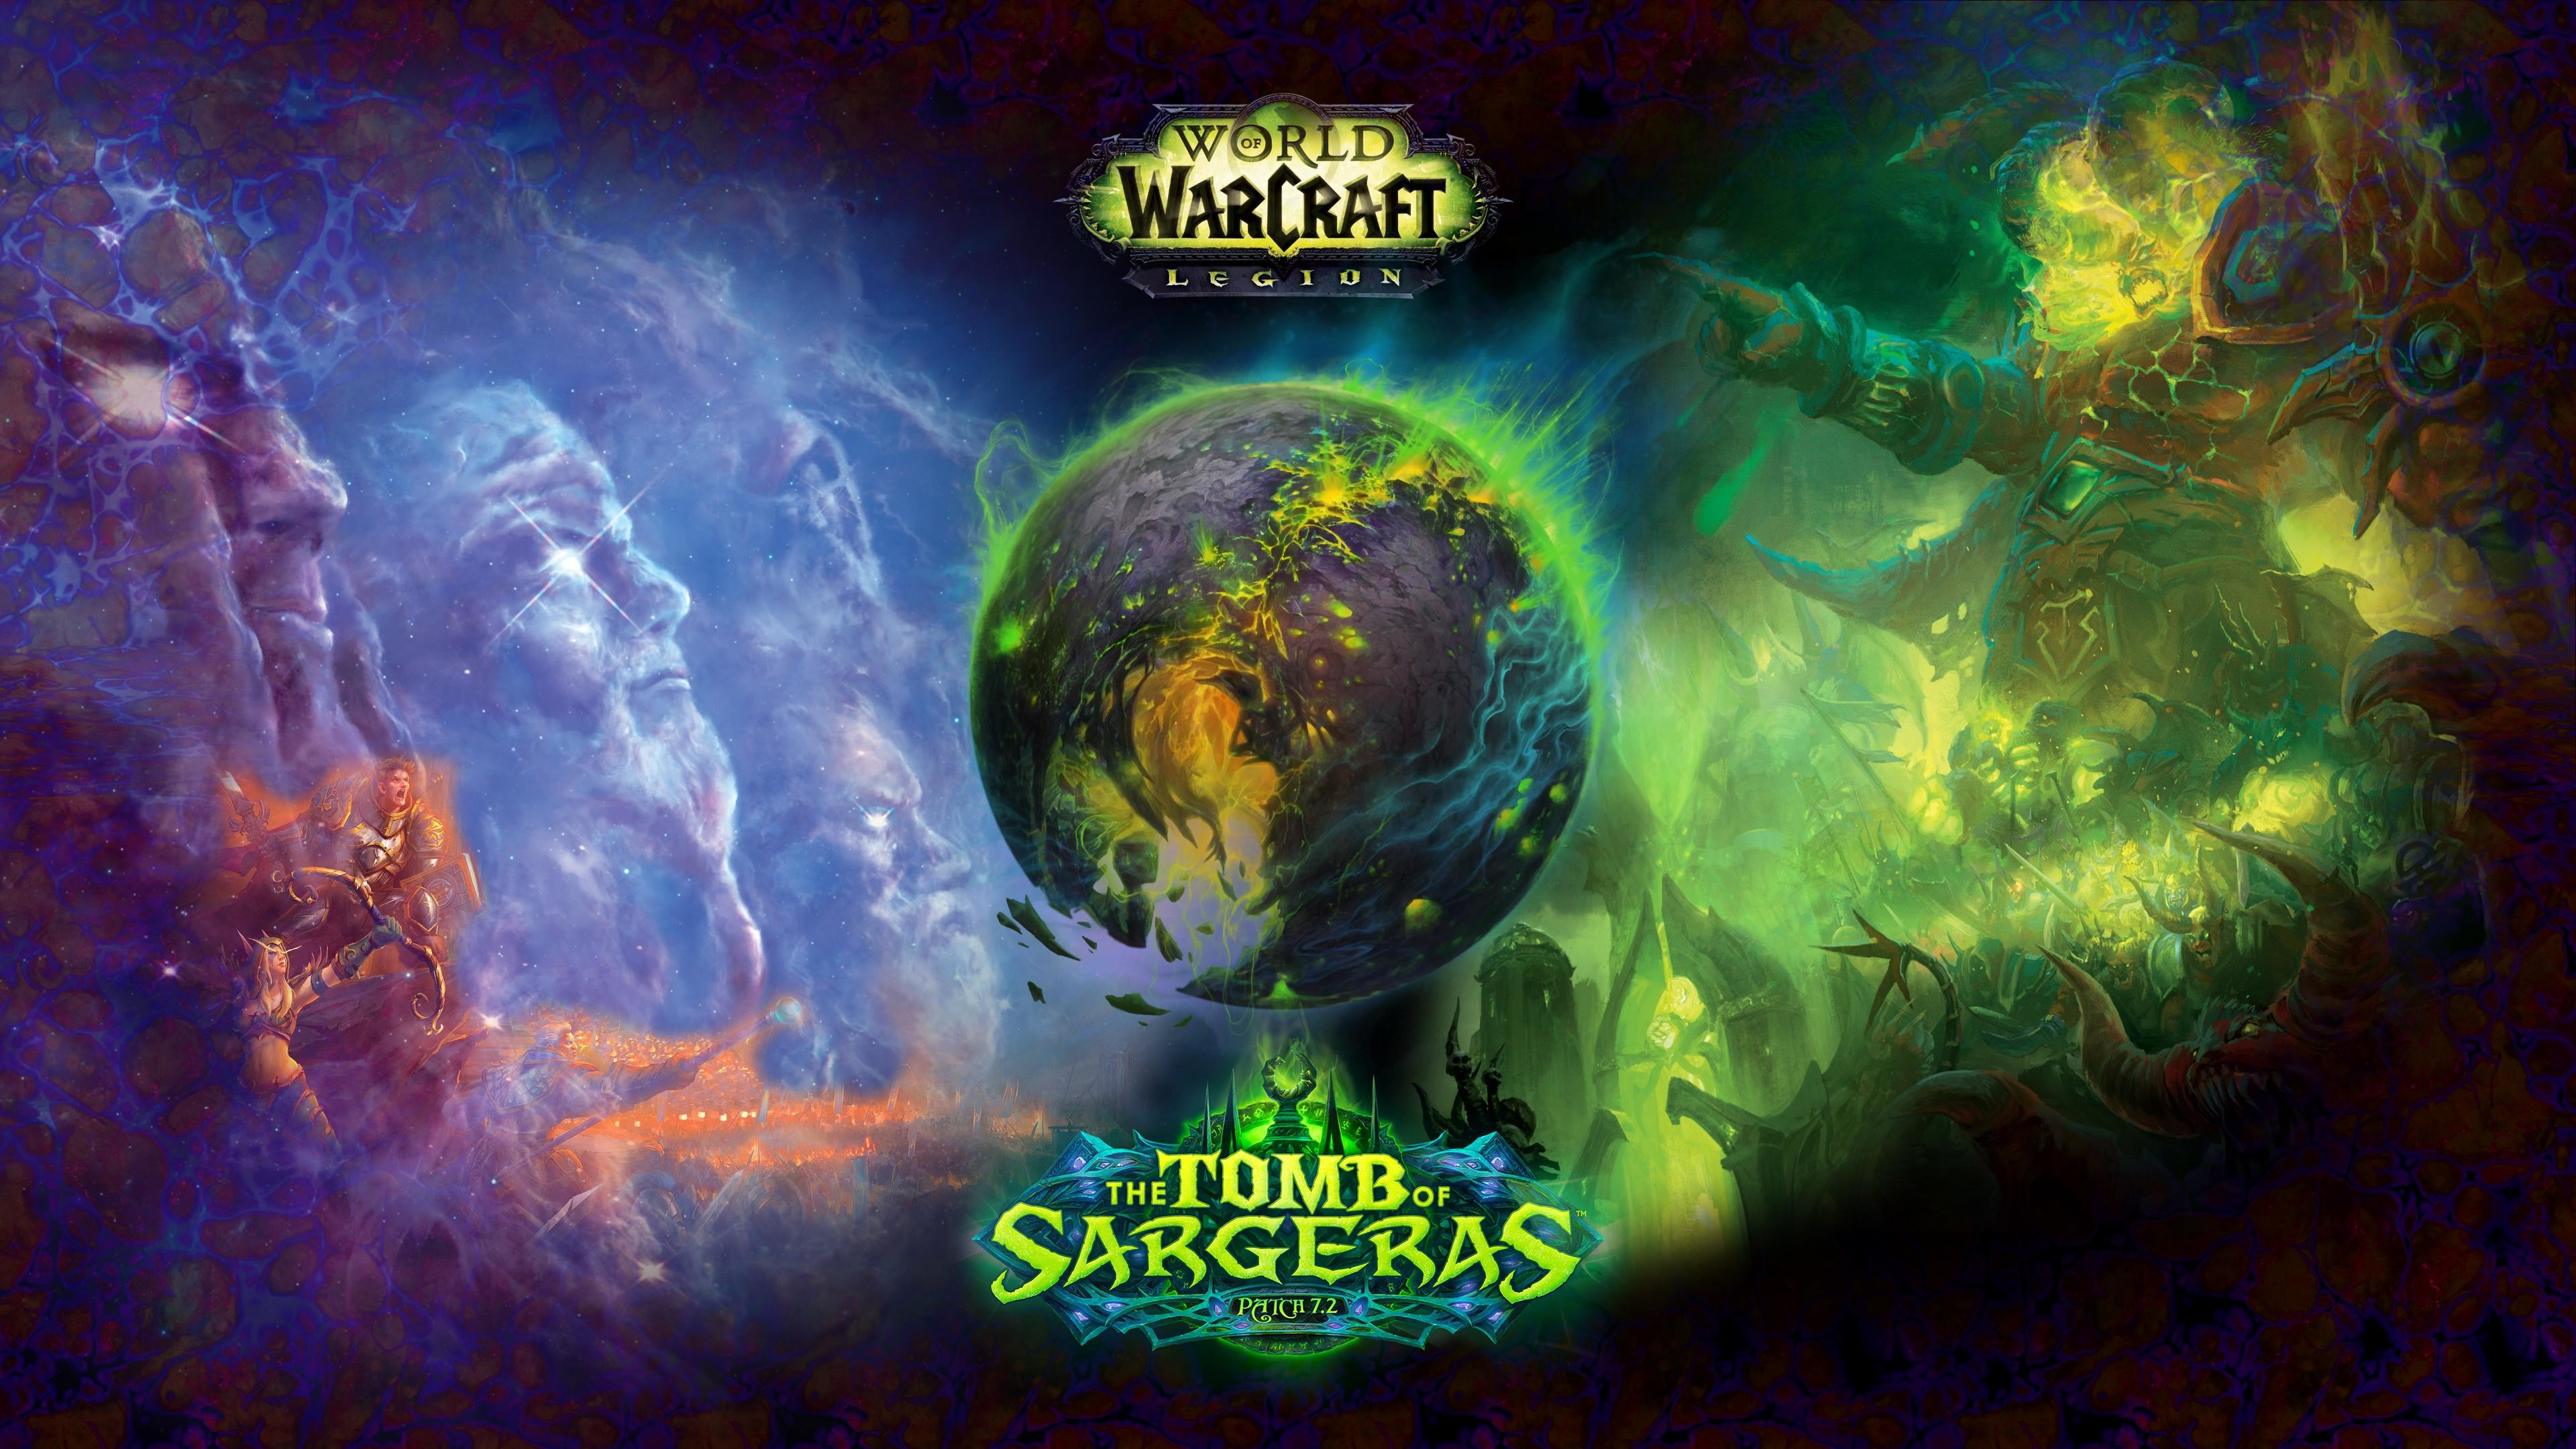 Sure, it looks more like a tease for 7.3 aka Argus than a Tomb of Sargeras  wallpaper, but it's very impressive nonetheless: